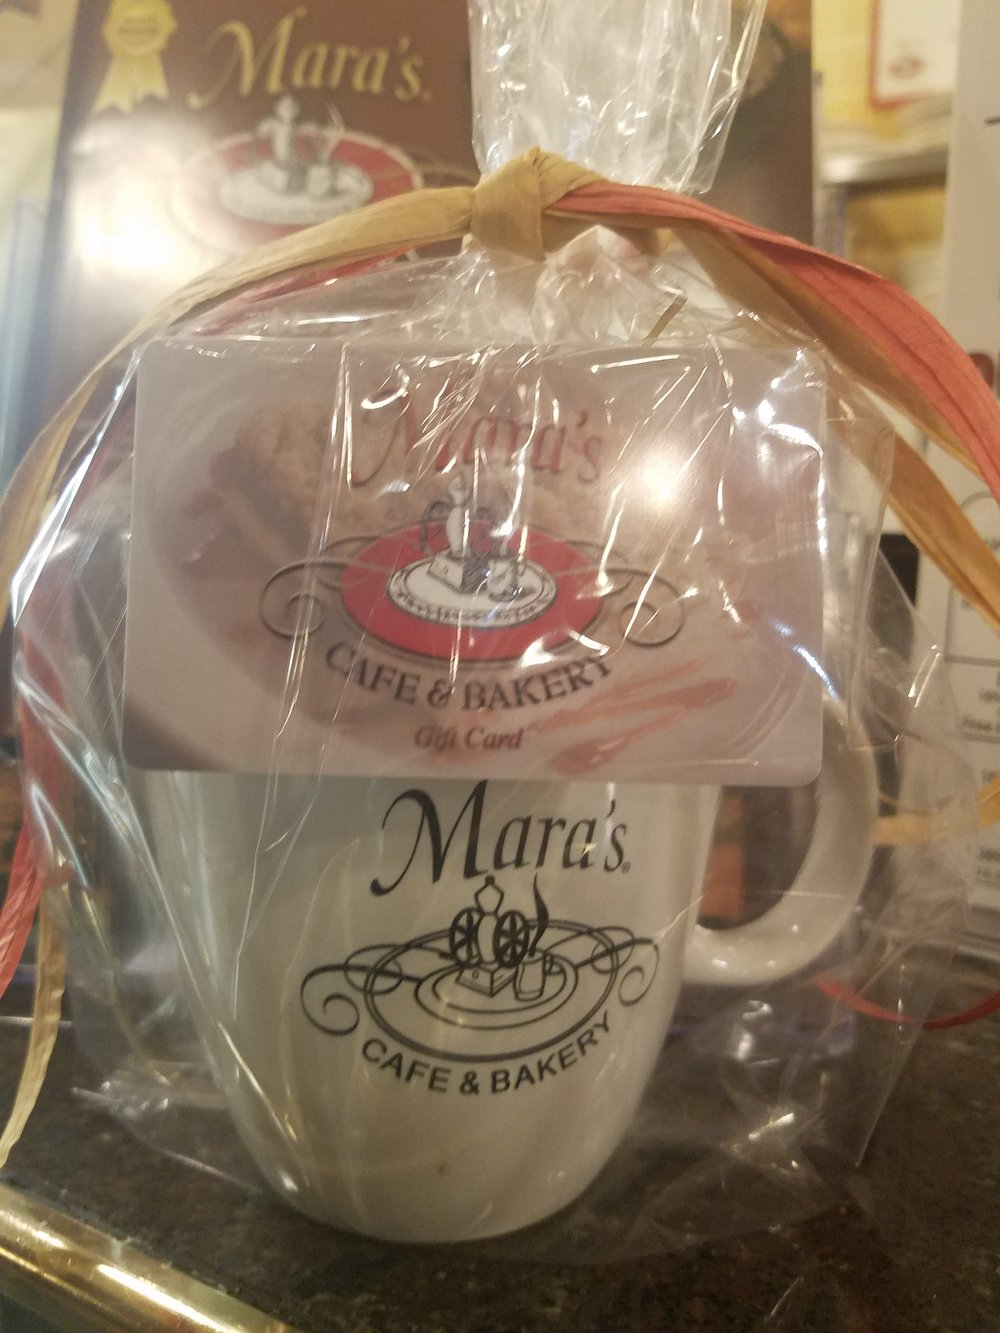 Mara's Mug of Good Taste - $7.99 + Gift card amount(available in any denomination)